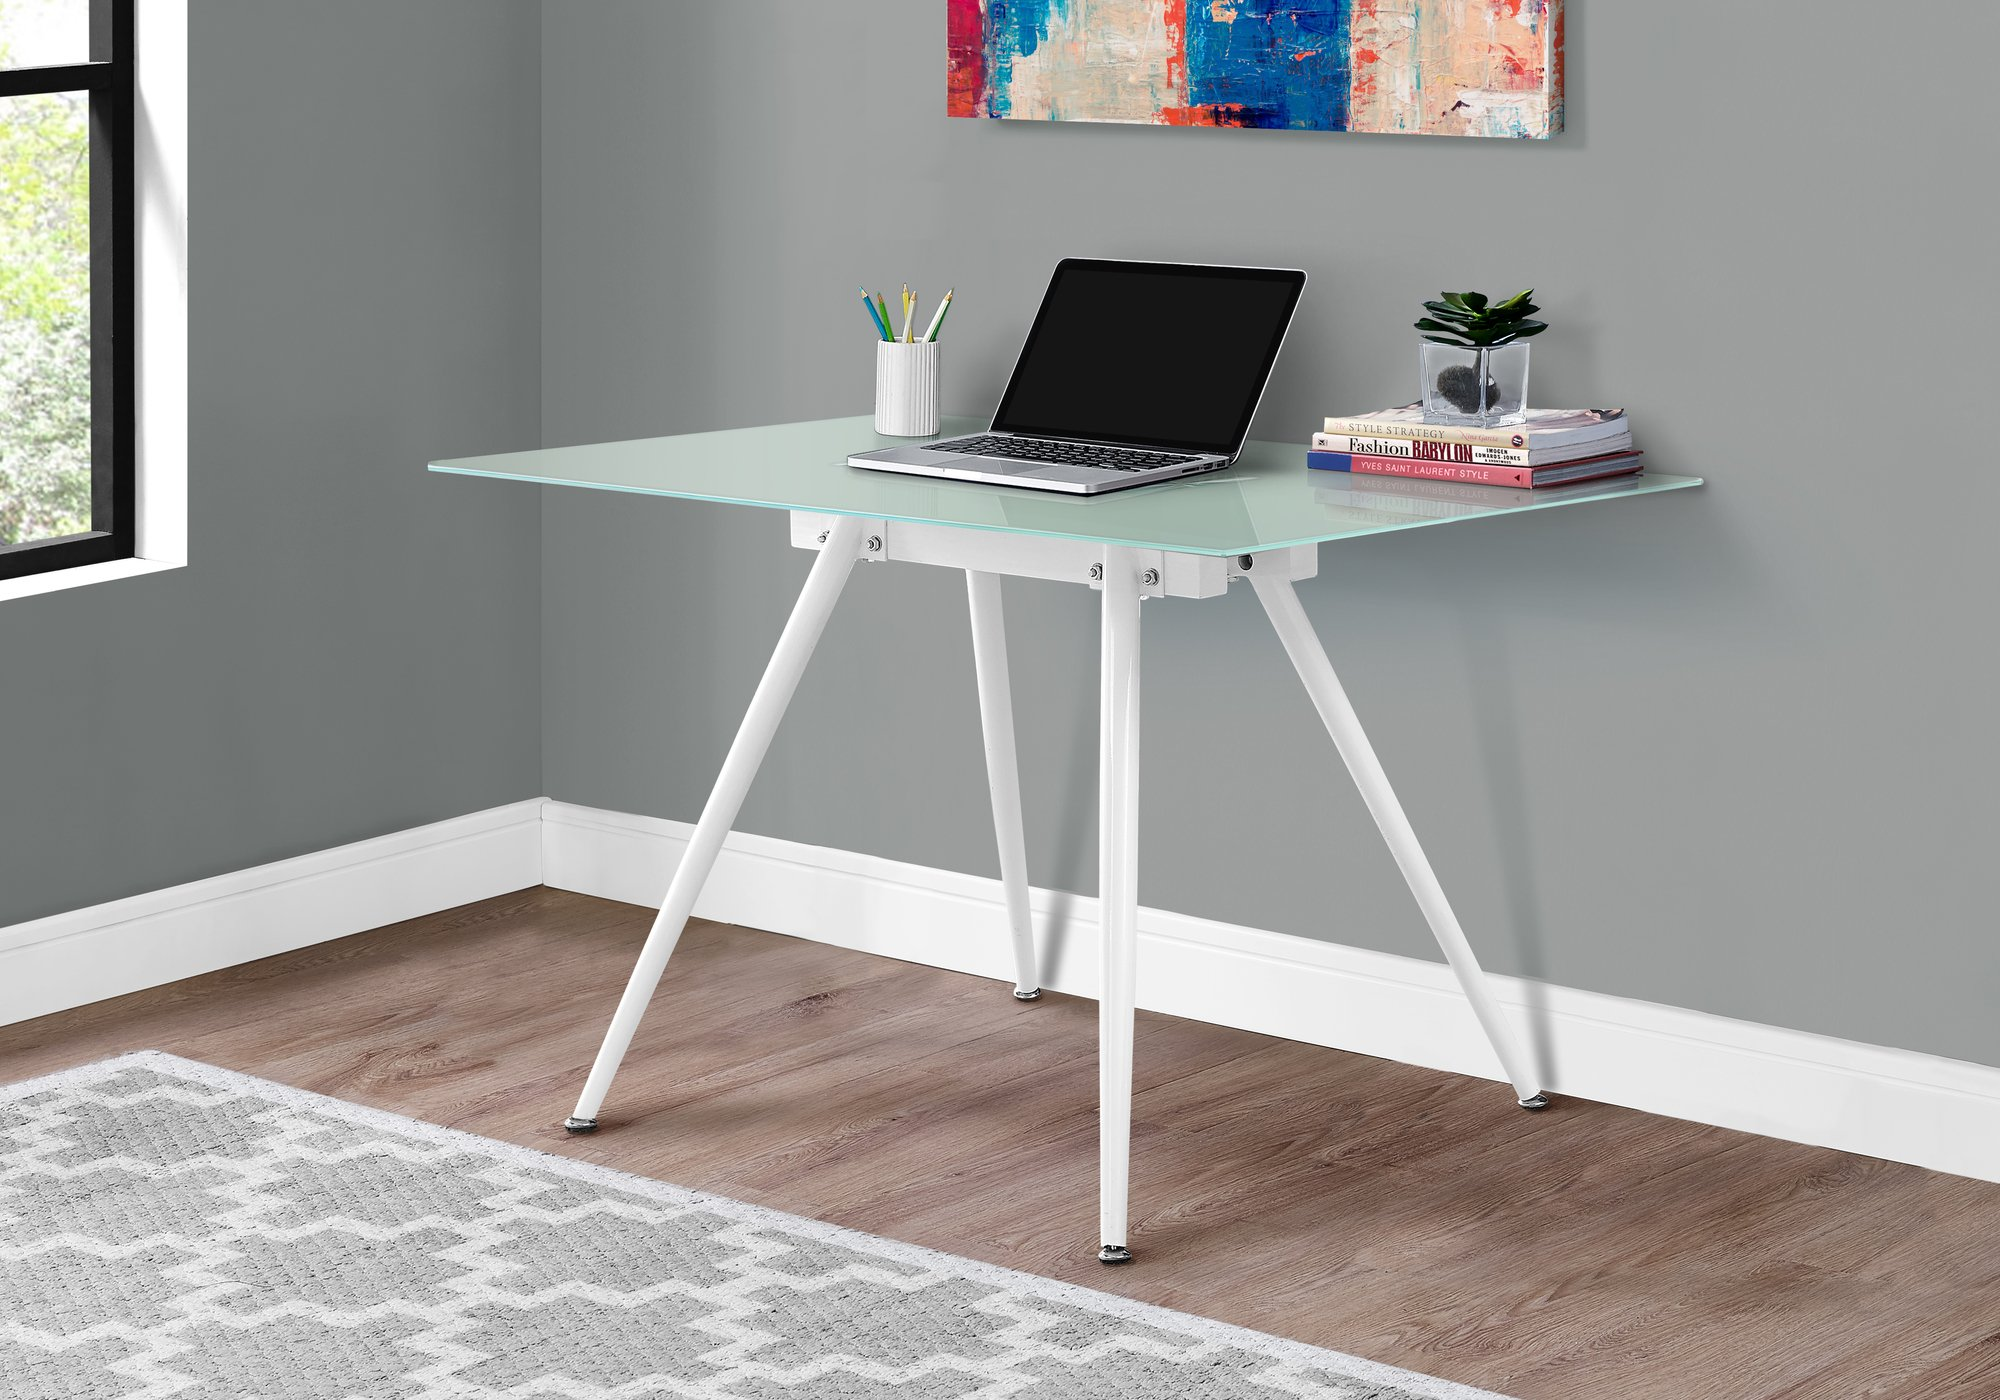 Monarch Specialties I 1032 28 x 48 in. COMPUTER DESK - 28  X 48   / WHITE / 8MM TEMPERED